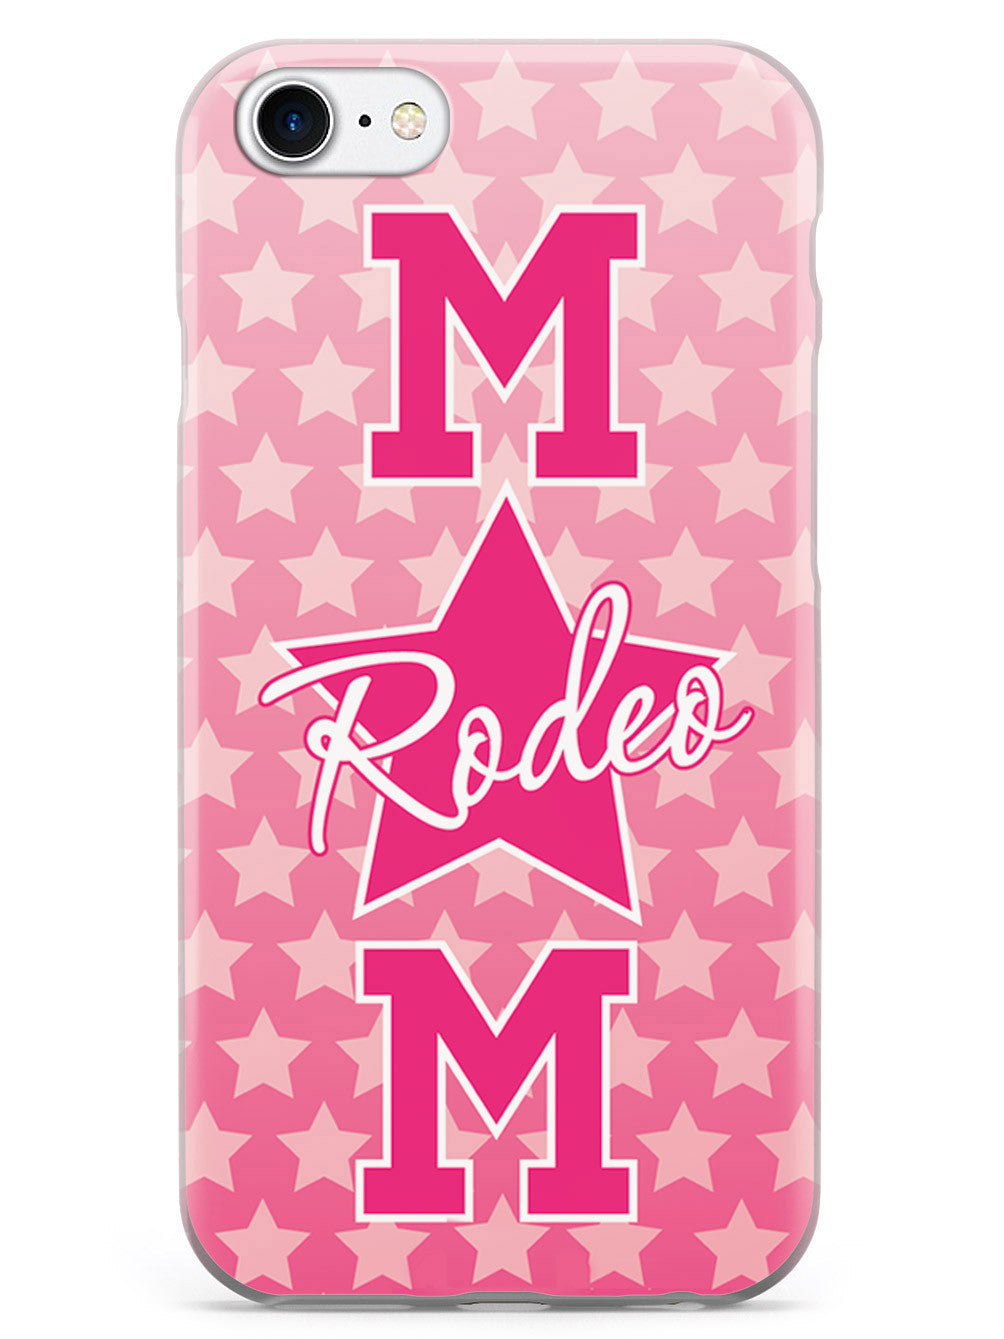 Rodeo Mom Case